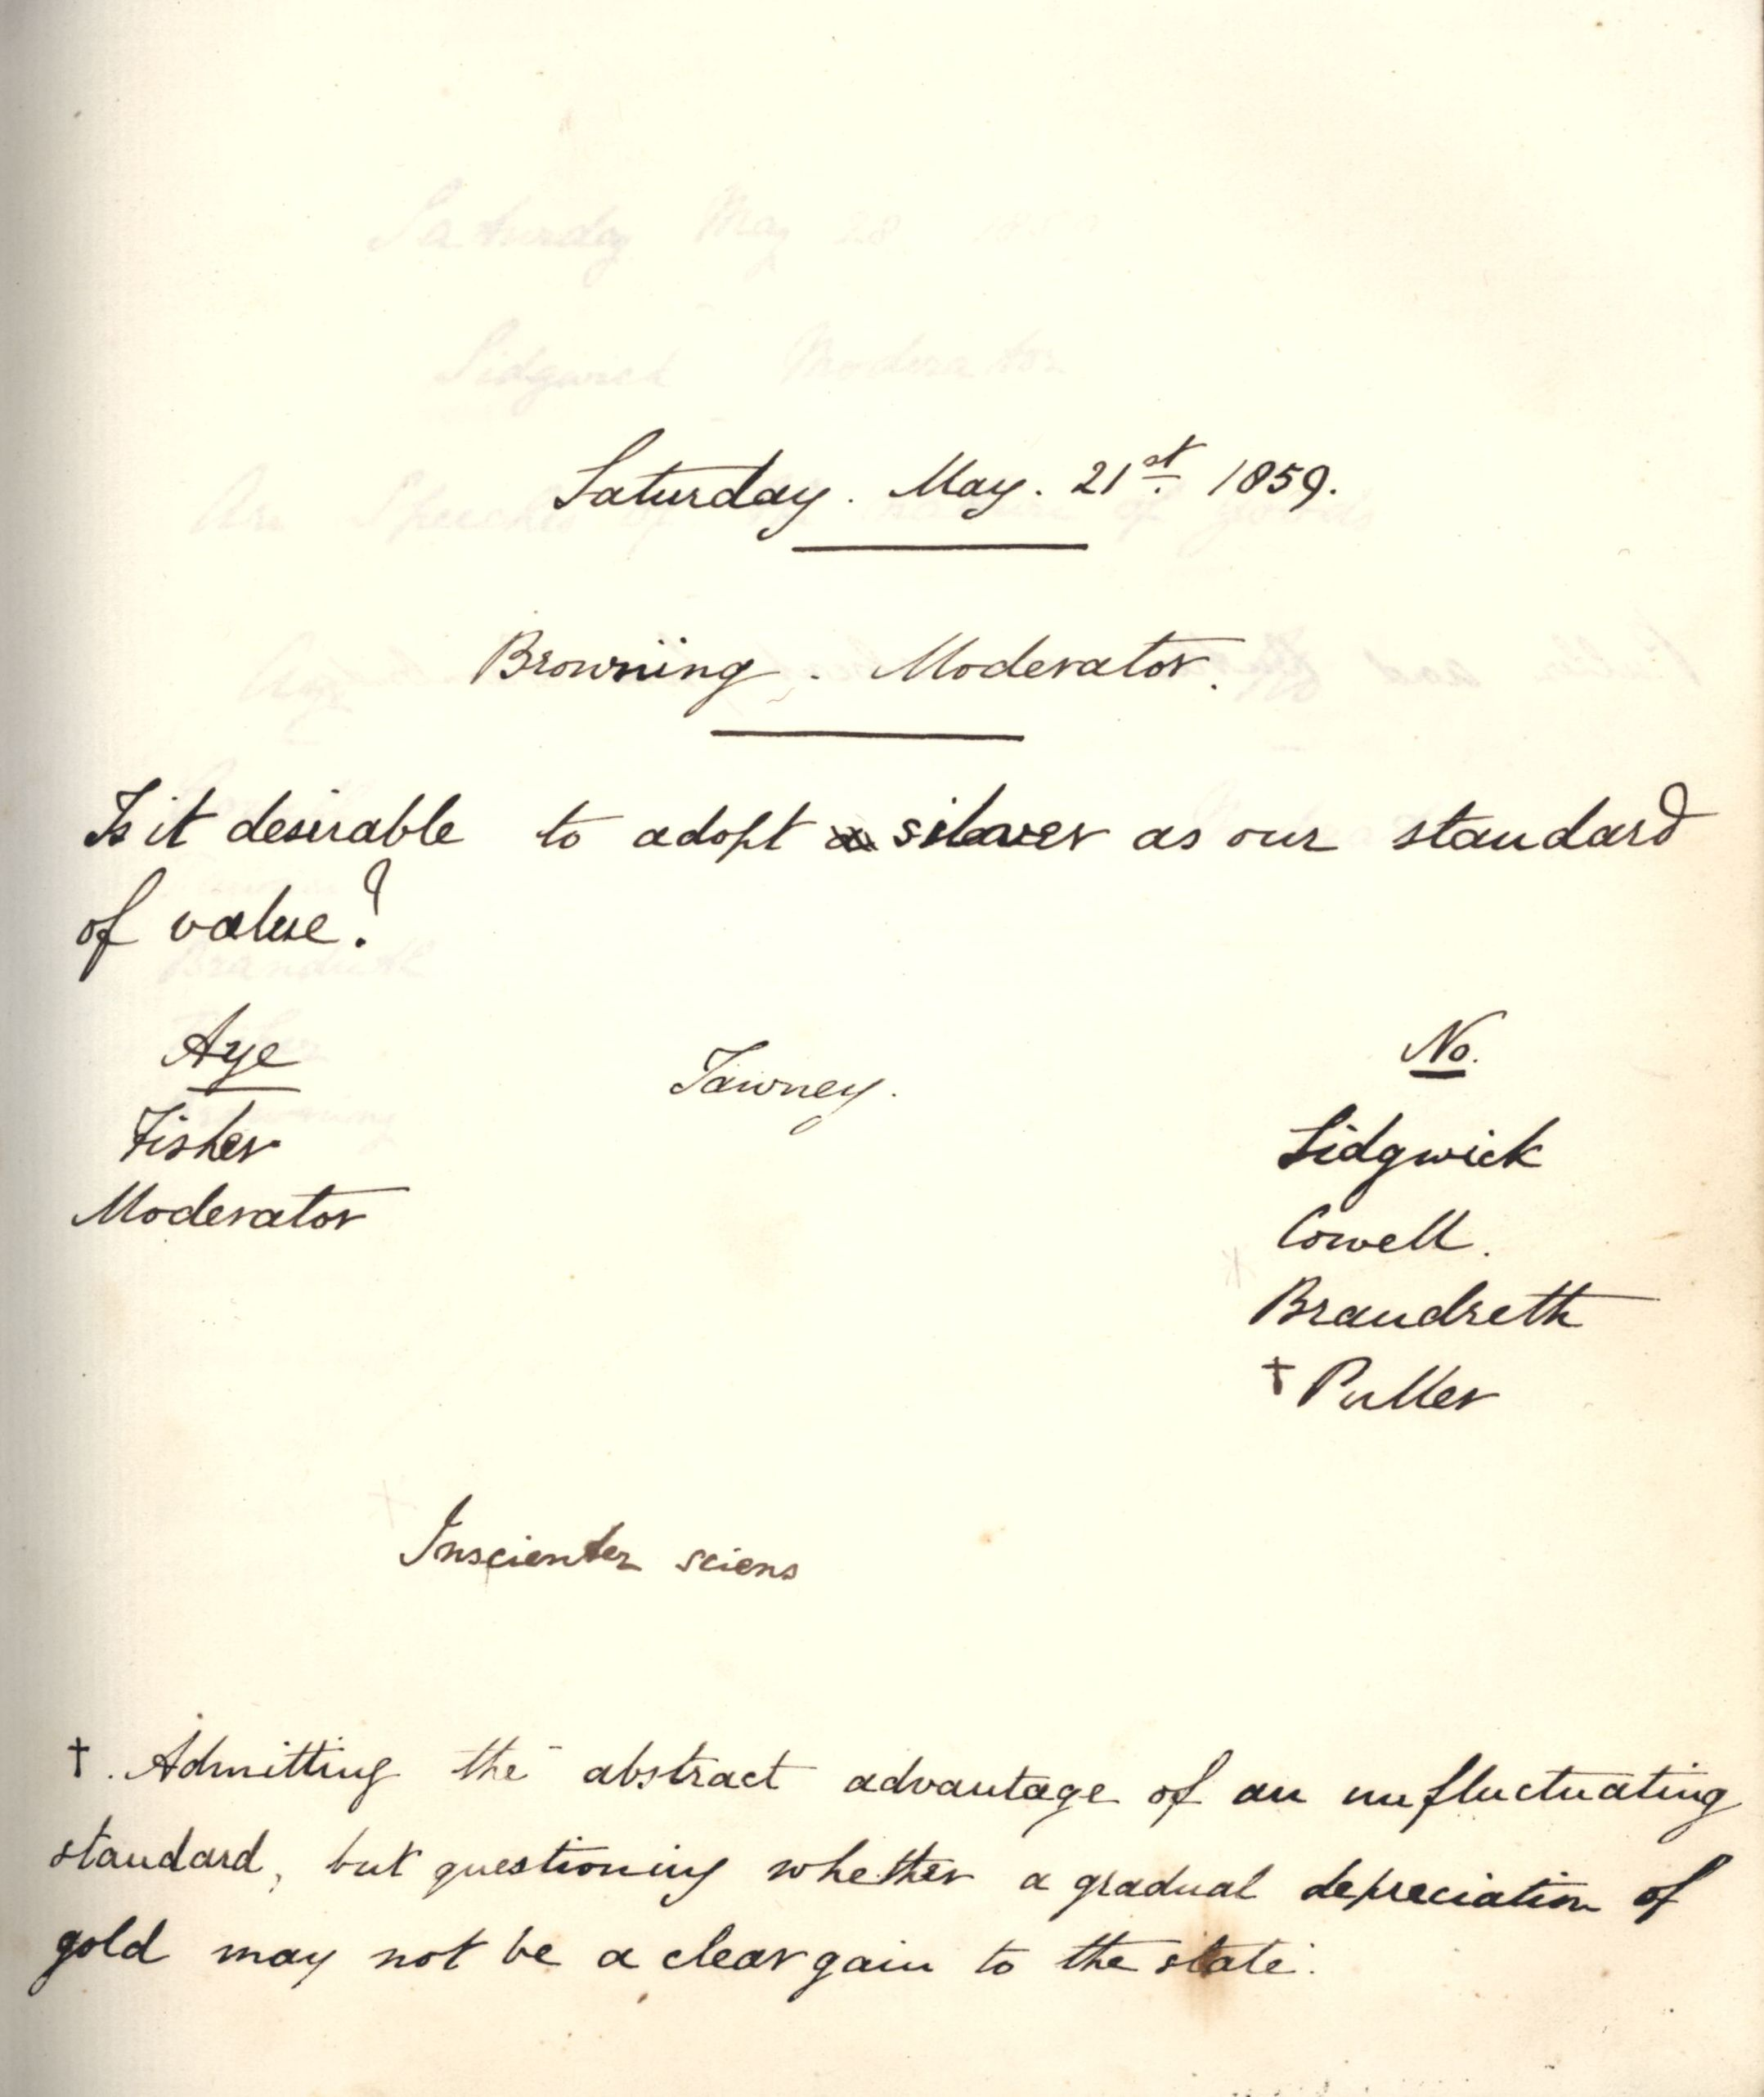 Minutes of a meeting in which Oscar Browning asked 'Is it desirable to adopt silver as our standard of value?' [KCAS/39/1/5, 21 May 1859]